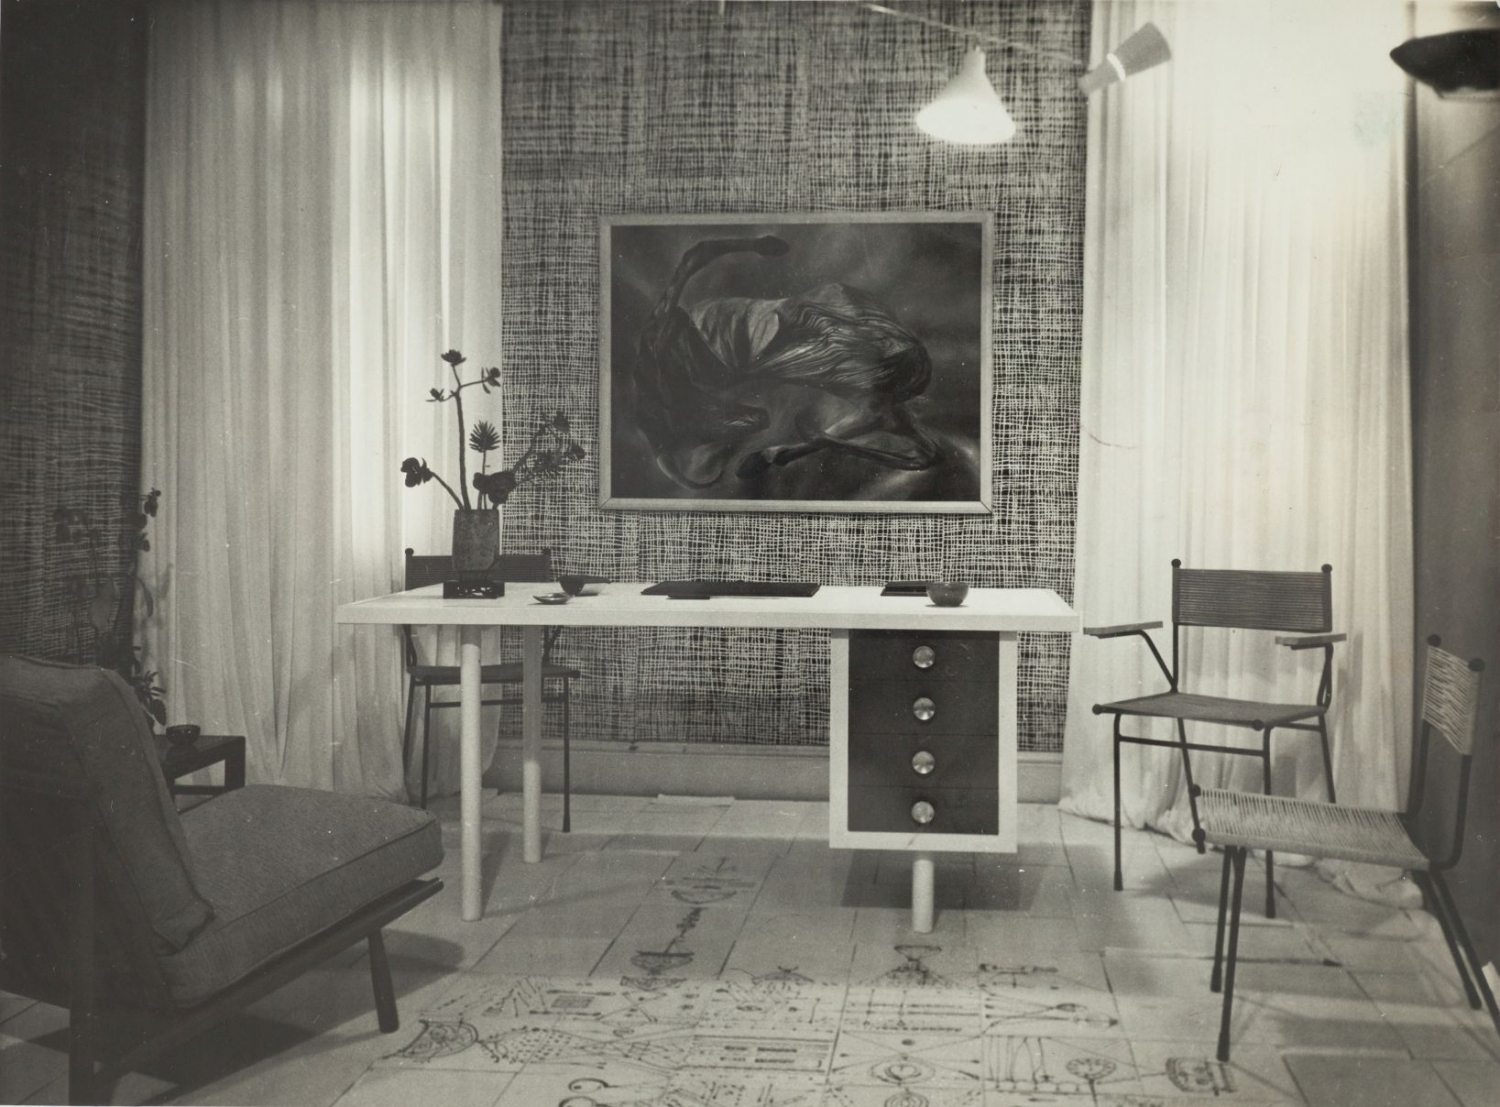 'The White Room', 1953